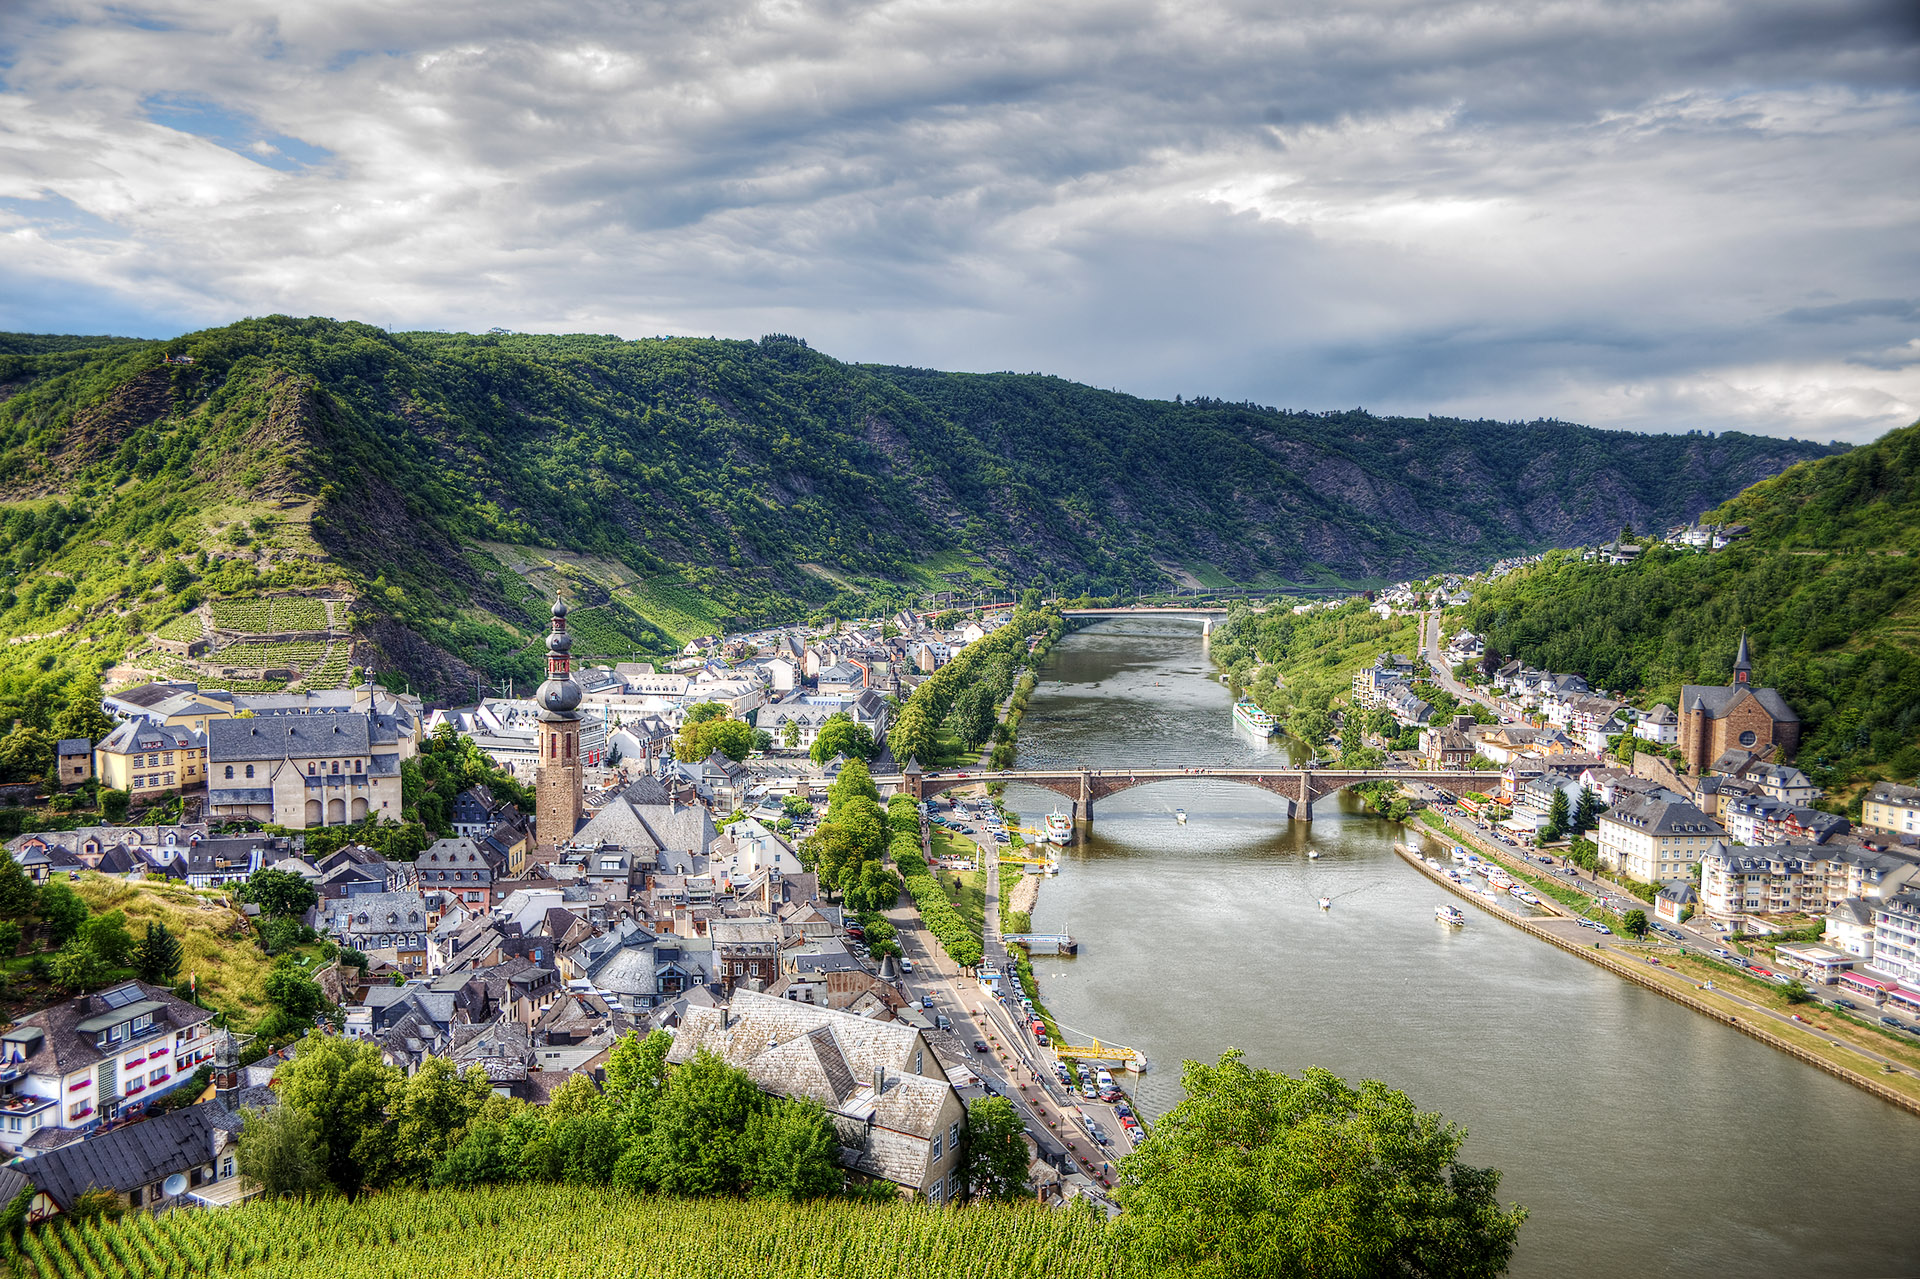 View from the parapet of Reichsburg Castle looking over Cochem, Germany.